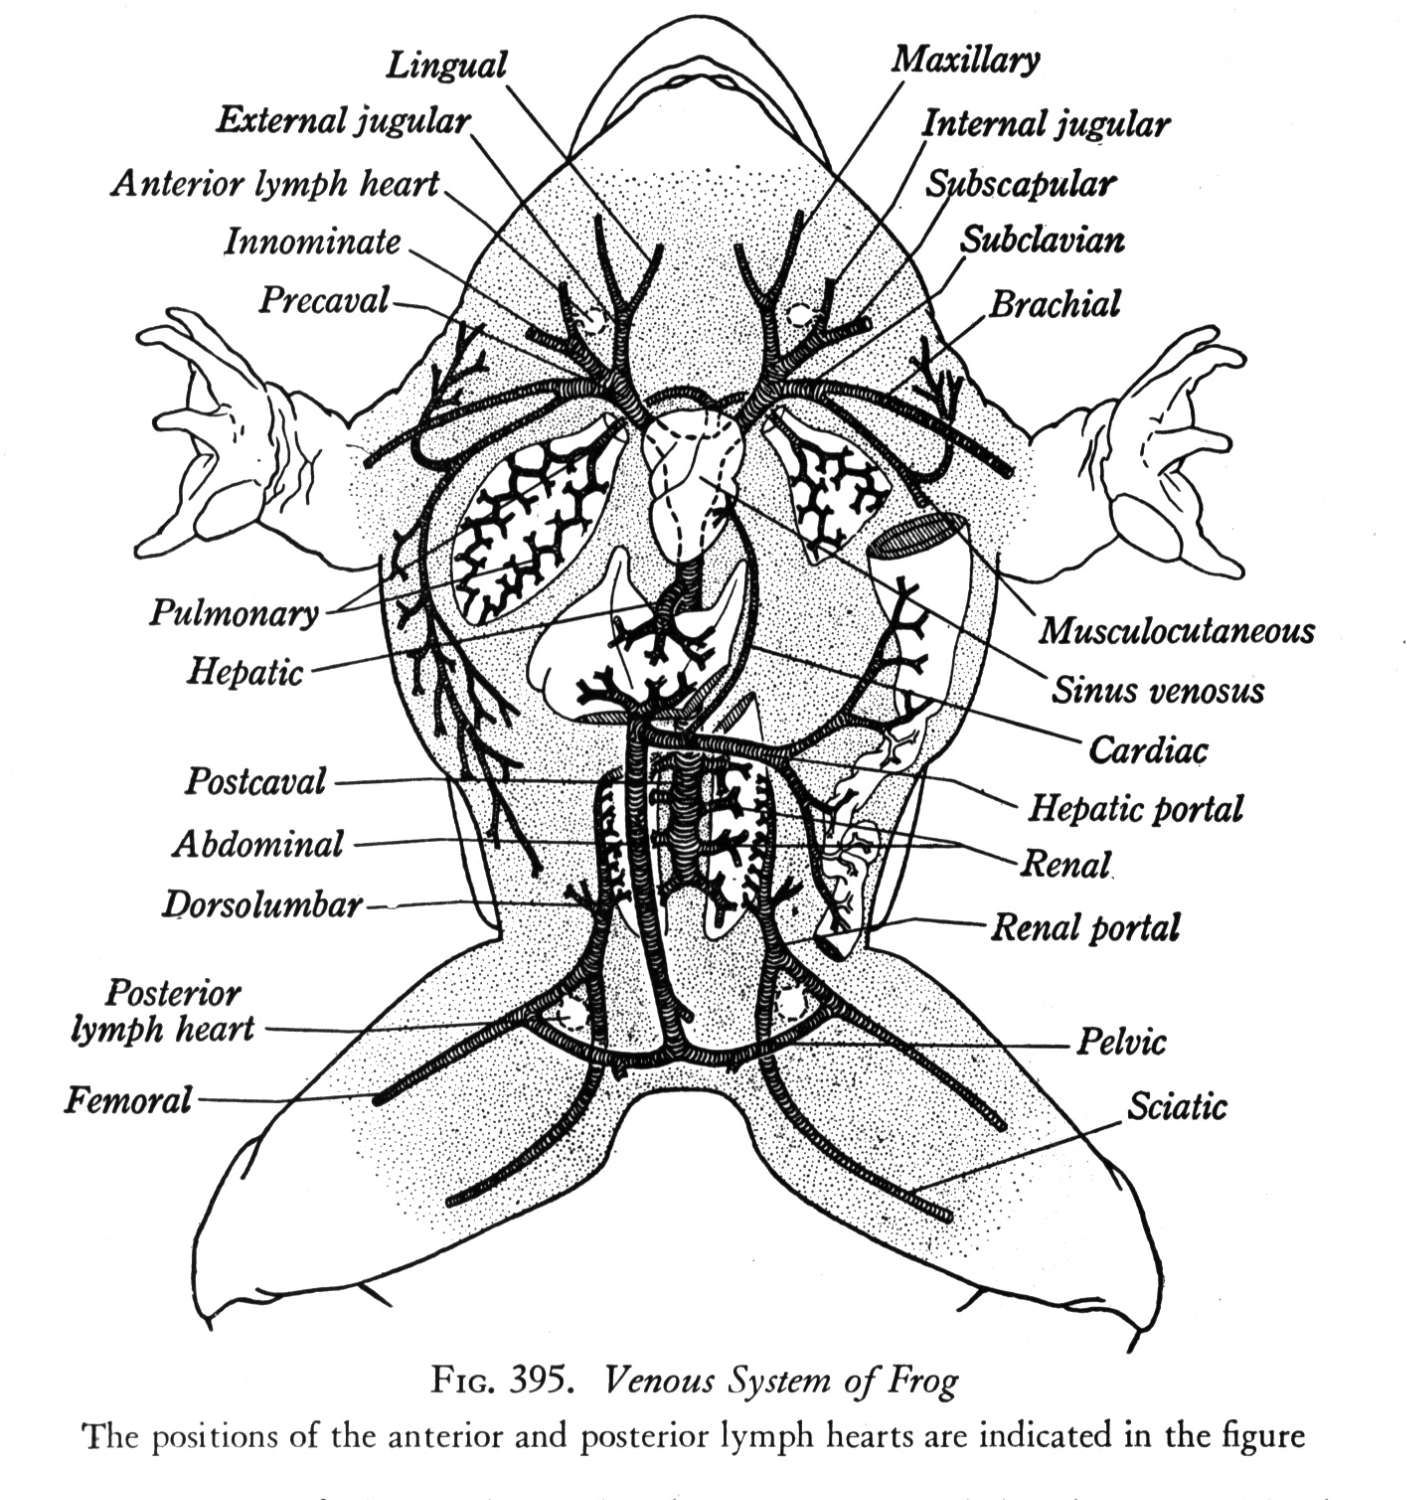 Frog Diagram Labeled